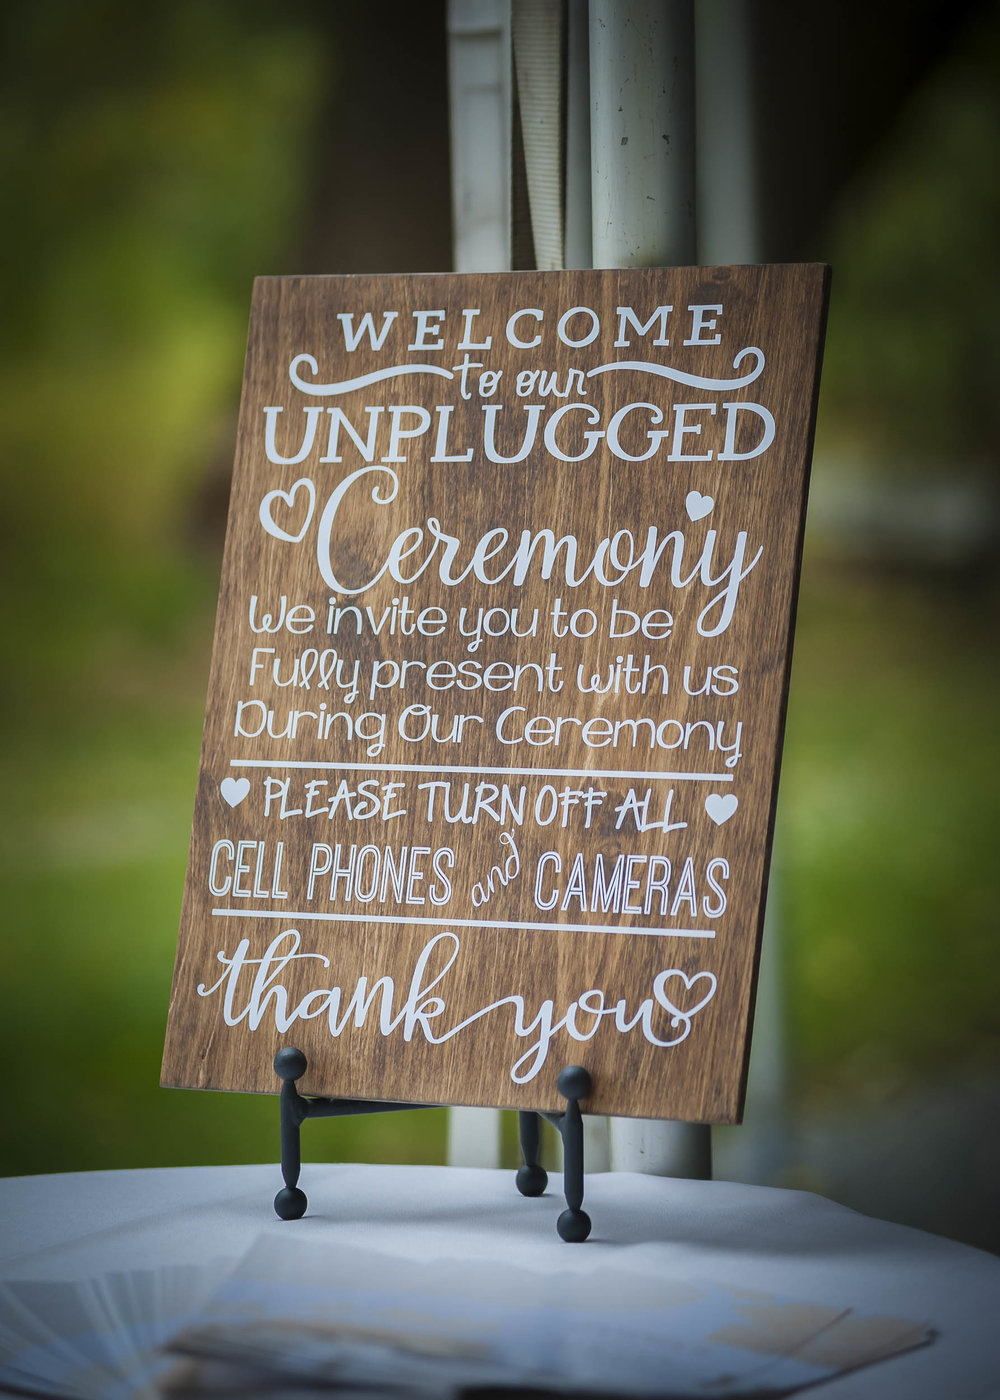 In addition to a brief statement by your wedding officiant, don't hesitate to have a sign as people enter the site advising you're having an unplugged wedding ceremony.